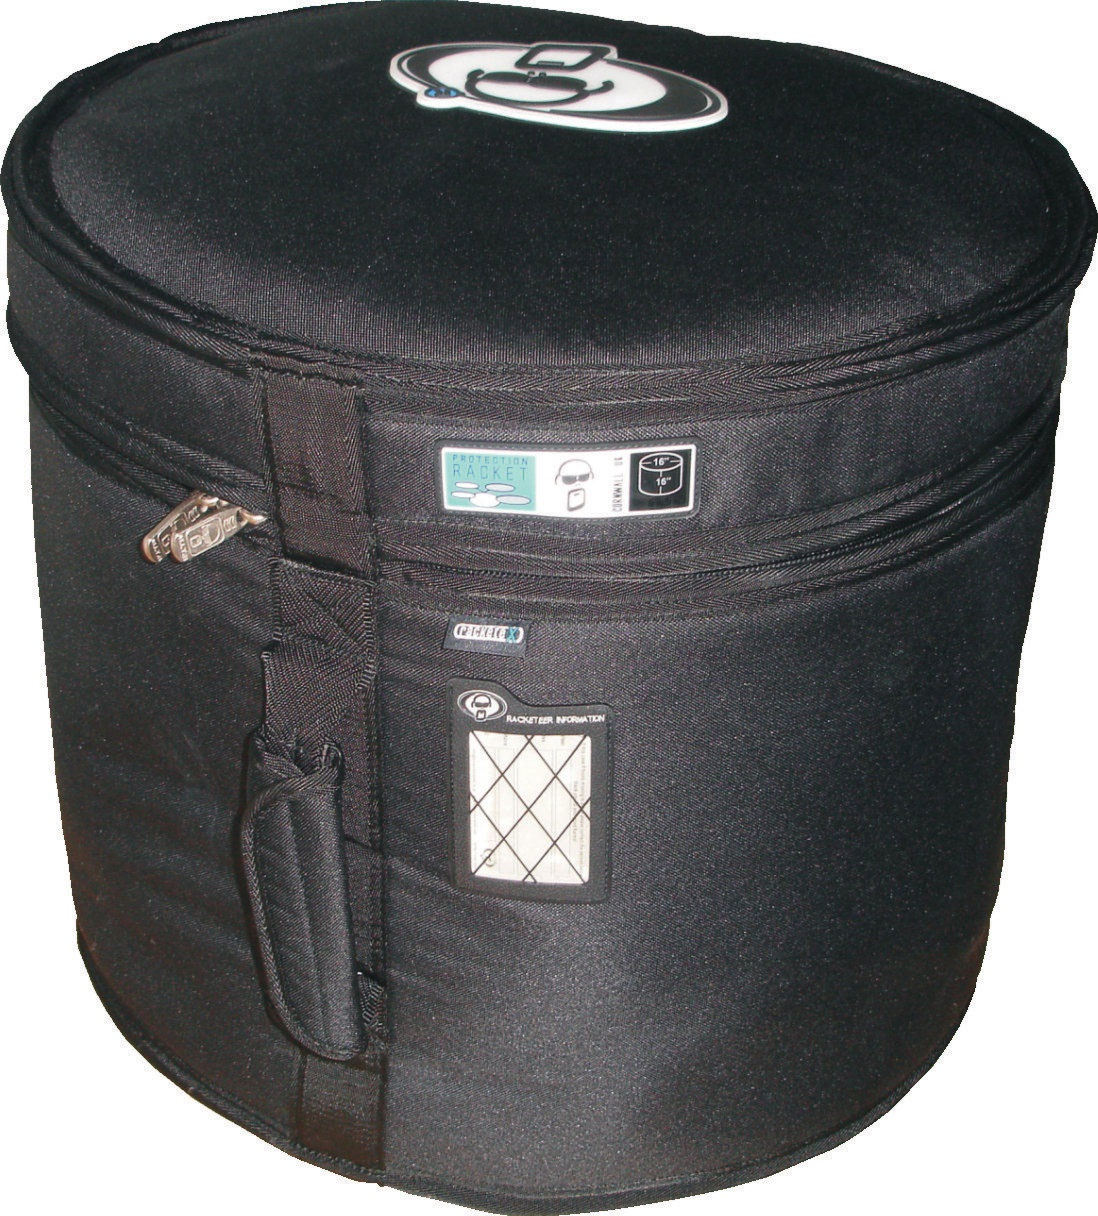 "Protection Racket 18"" x 18"" Floor Tom Case"